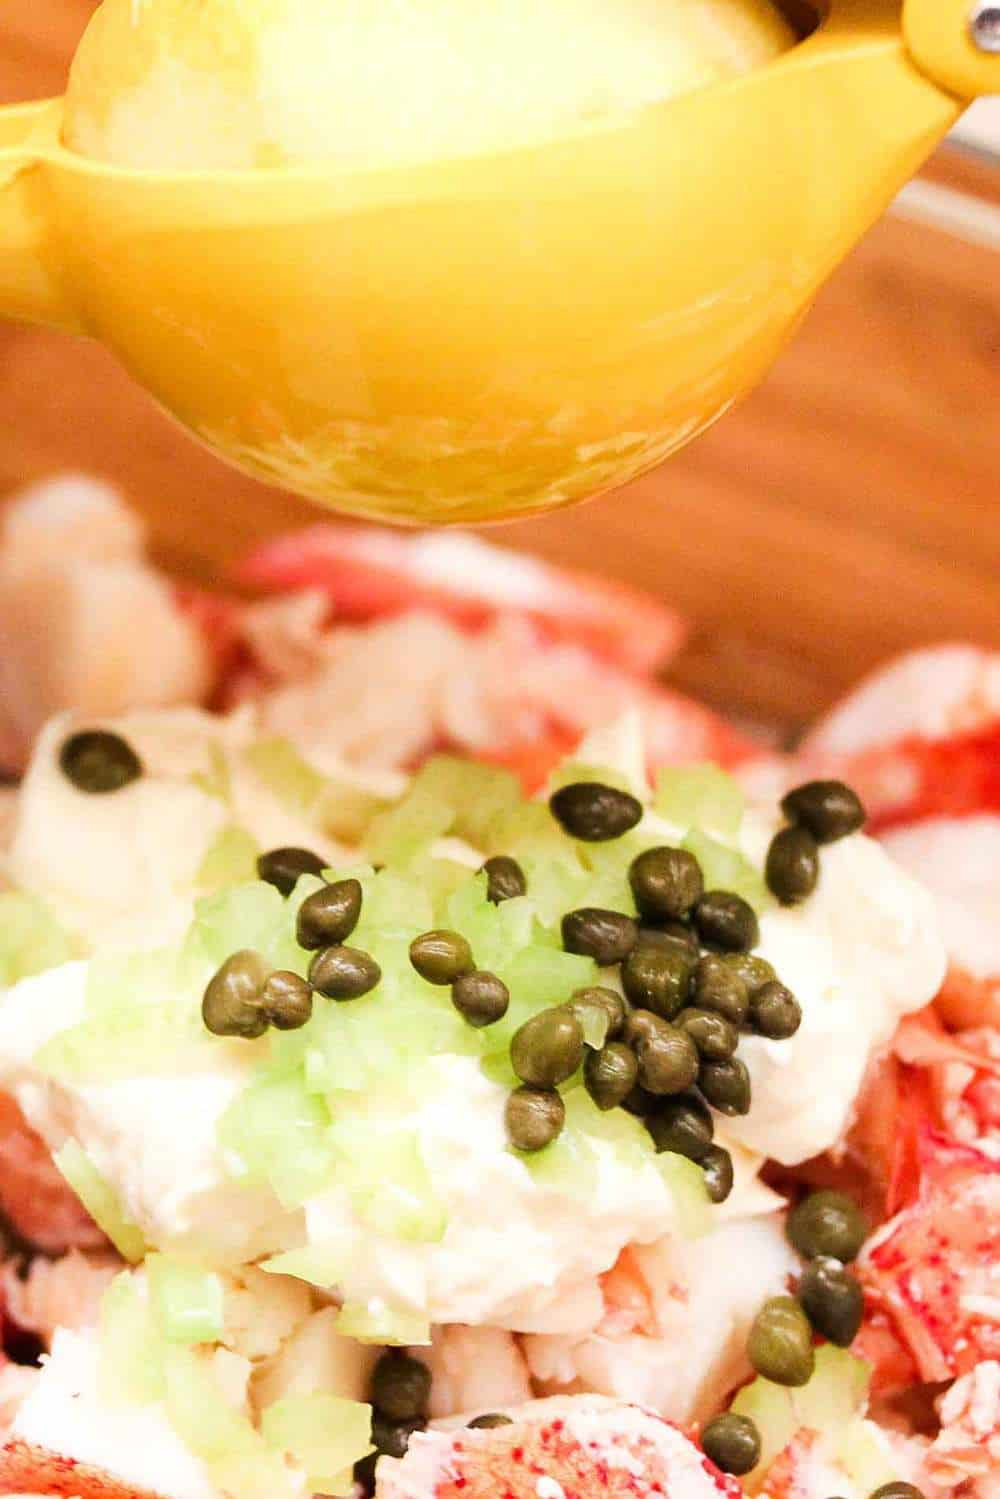 A bowl of lobster roll ingredients of lobster meat, capers and fresh lemon juice.